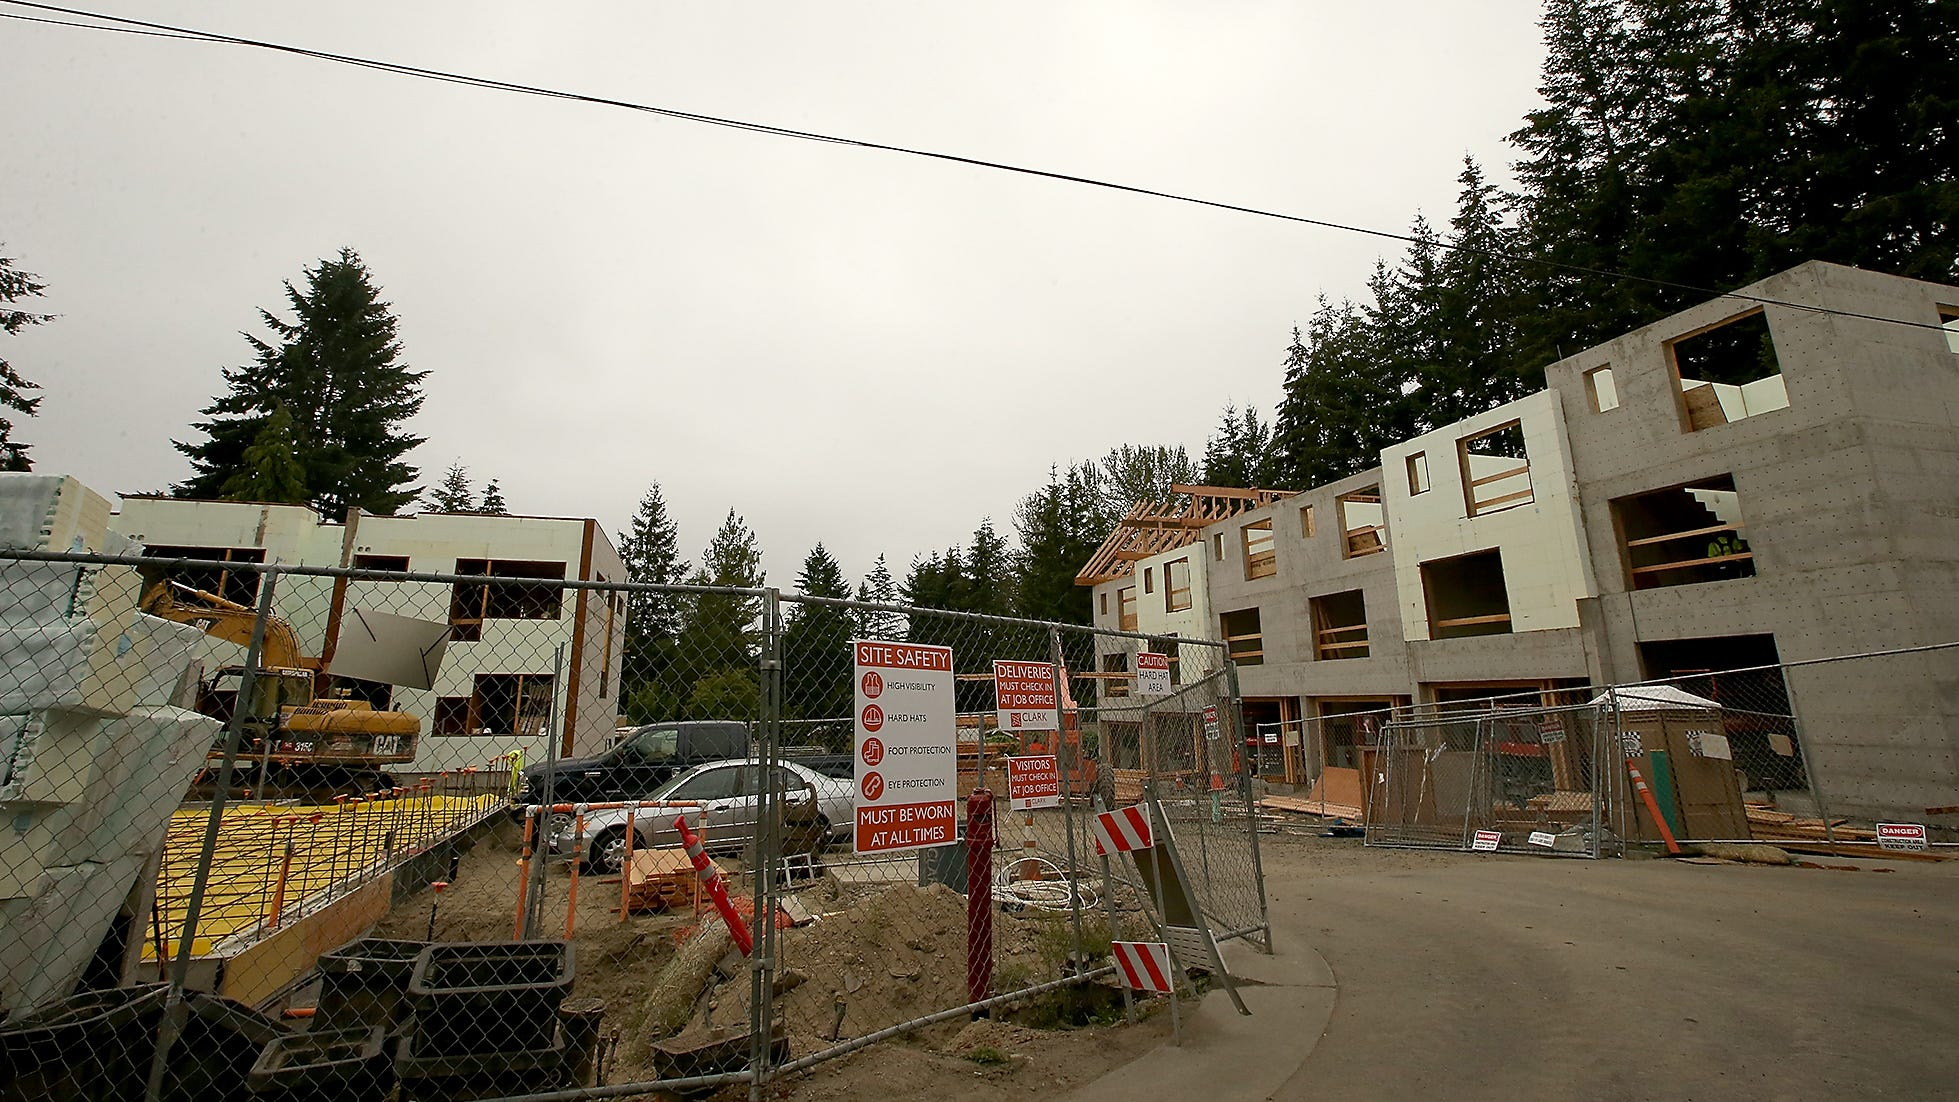 Construction site along Madrona Way on Bainbridge Island on Thursday, August 16, 2018.